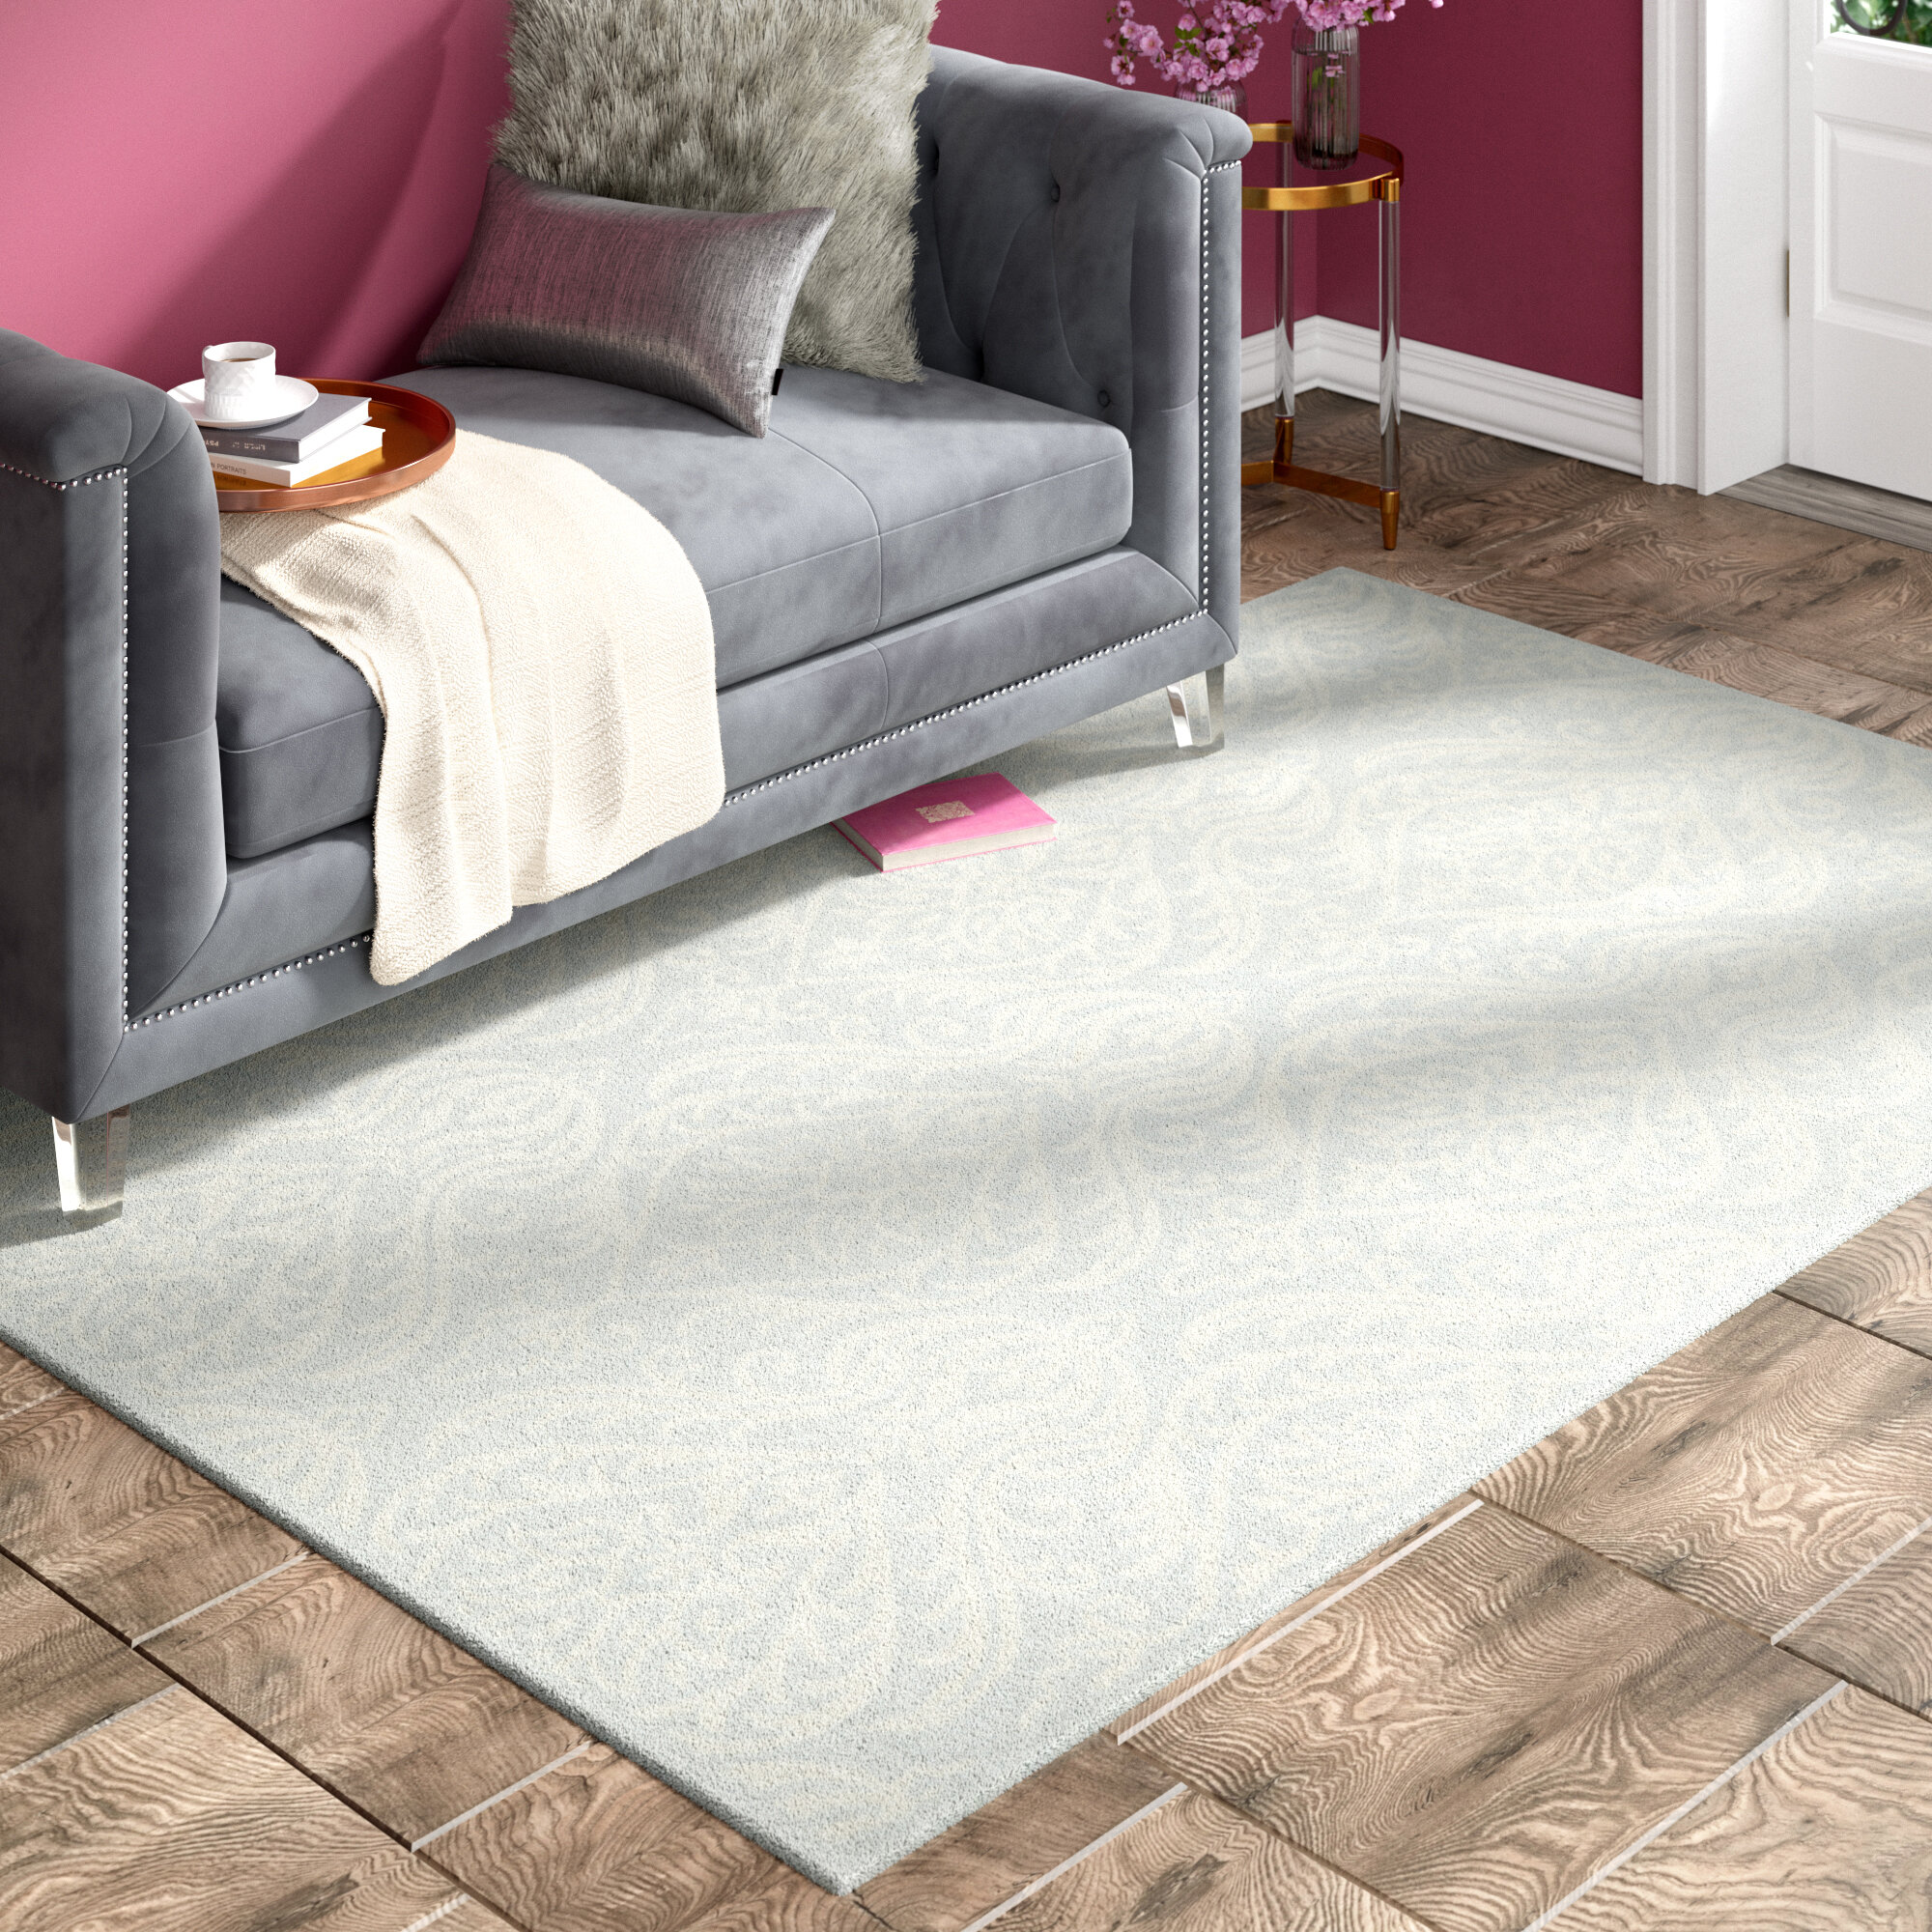 Willa Arlo Interiors Mcguire Hand Tufted Wool Silver Ivory Area Rug